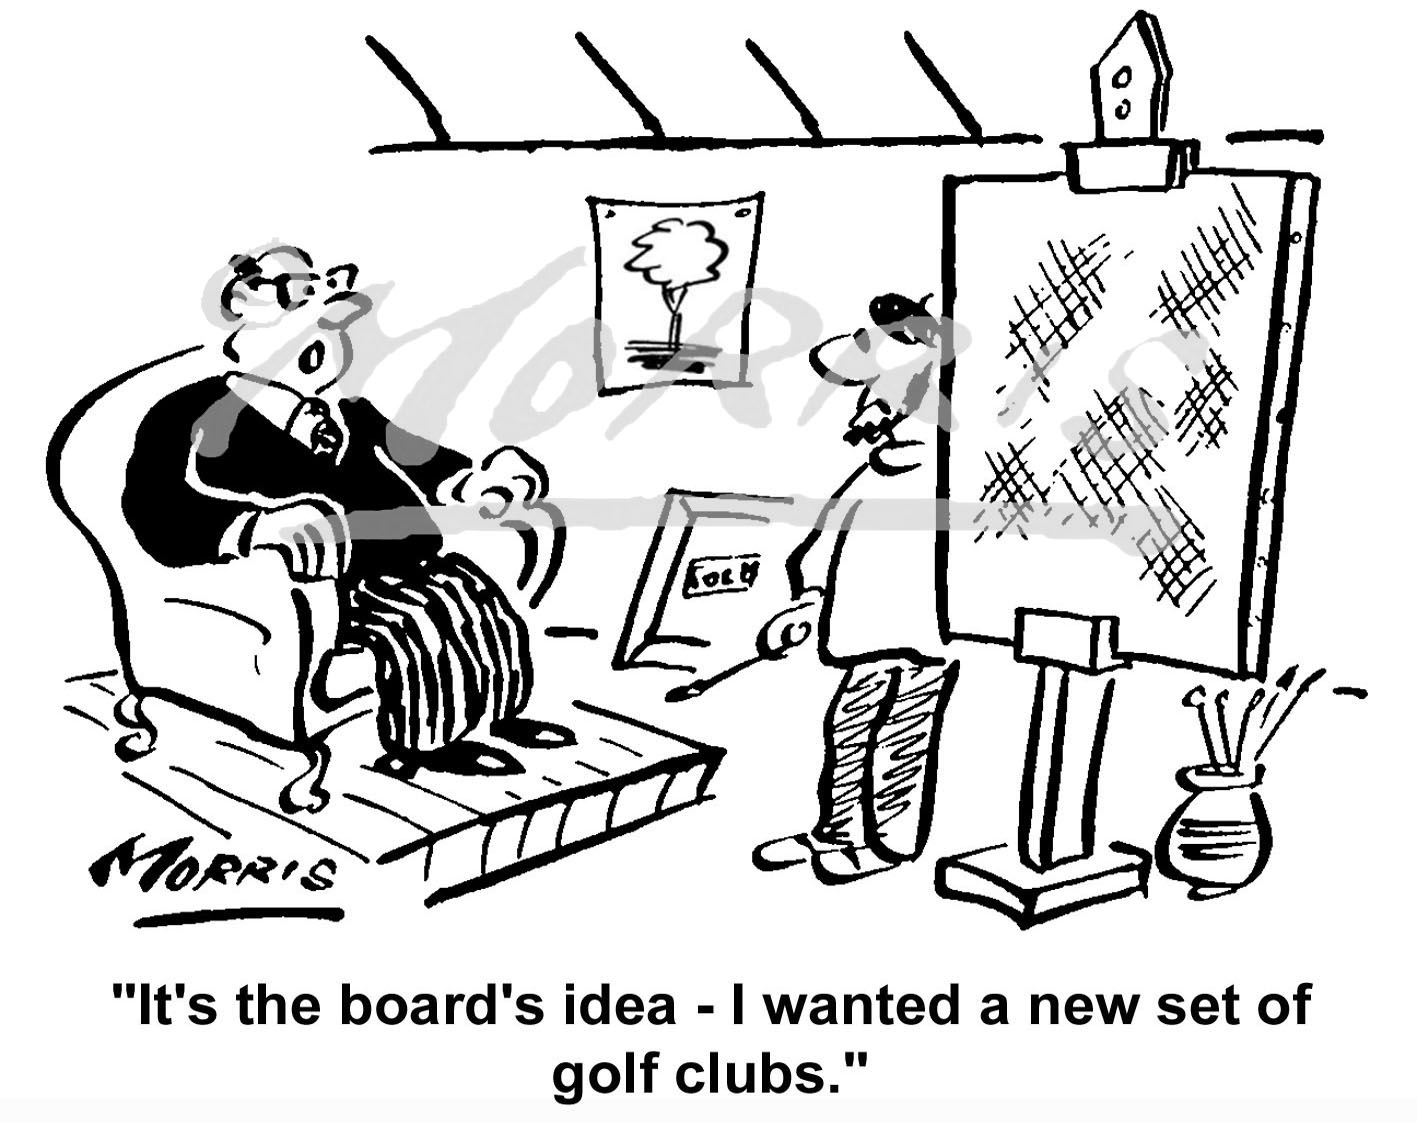 Boardroom Chairman cartoon Ref: 1469bw